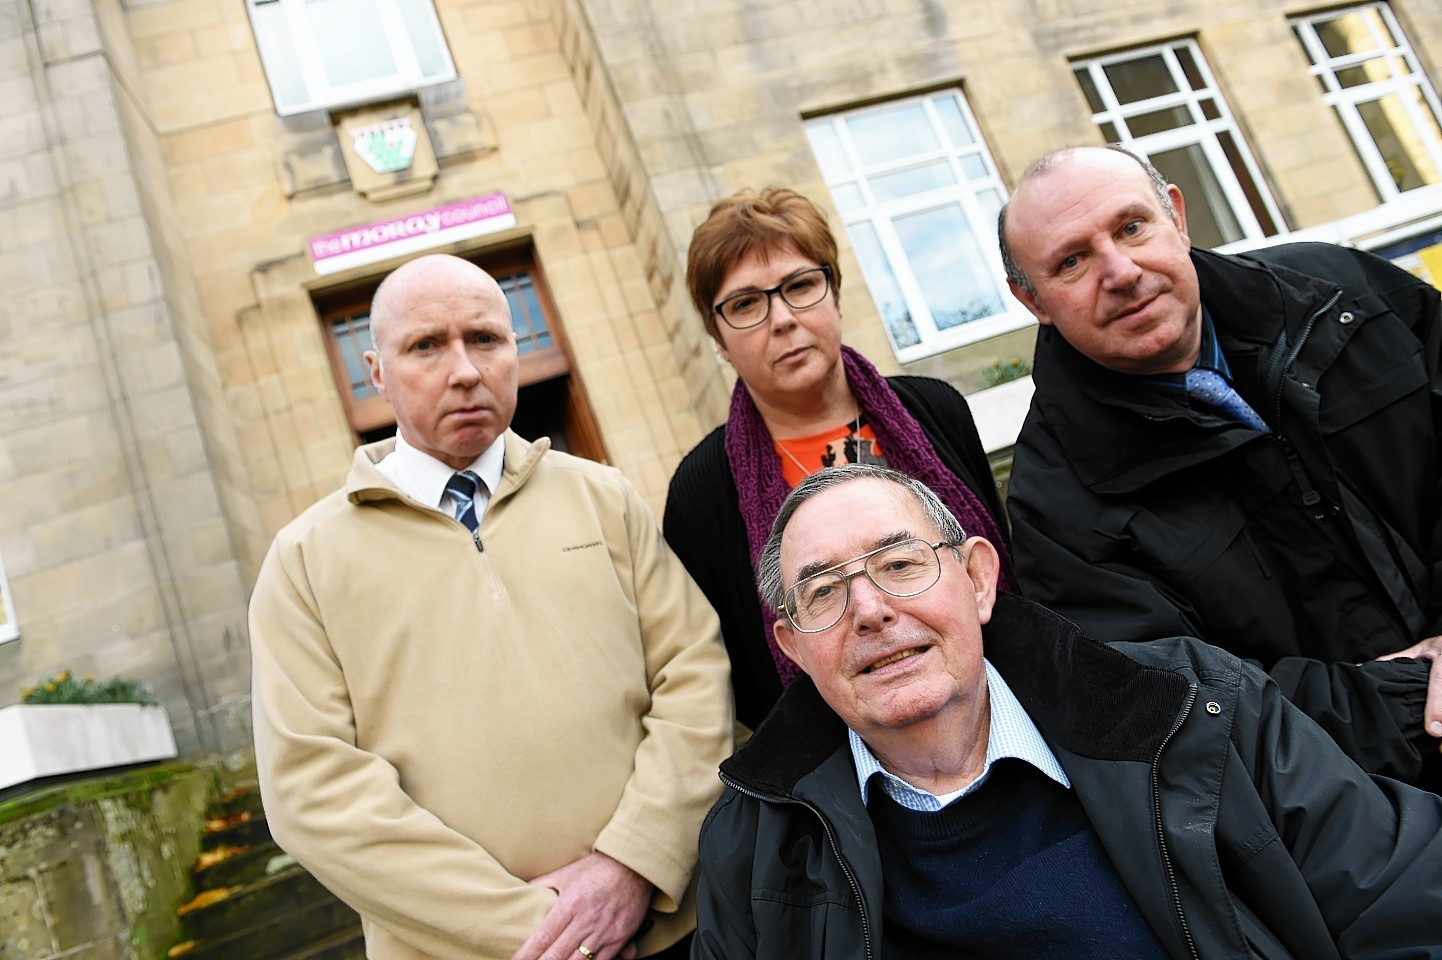 John Lally, Gillian Priestley, Robert Murdoch and Paul Brown outside Moray Council HQ. Picture by Gordon Lennox